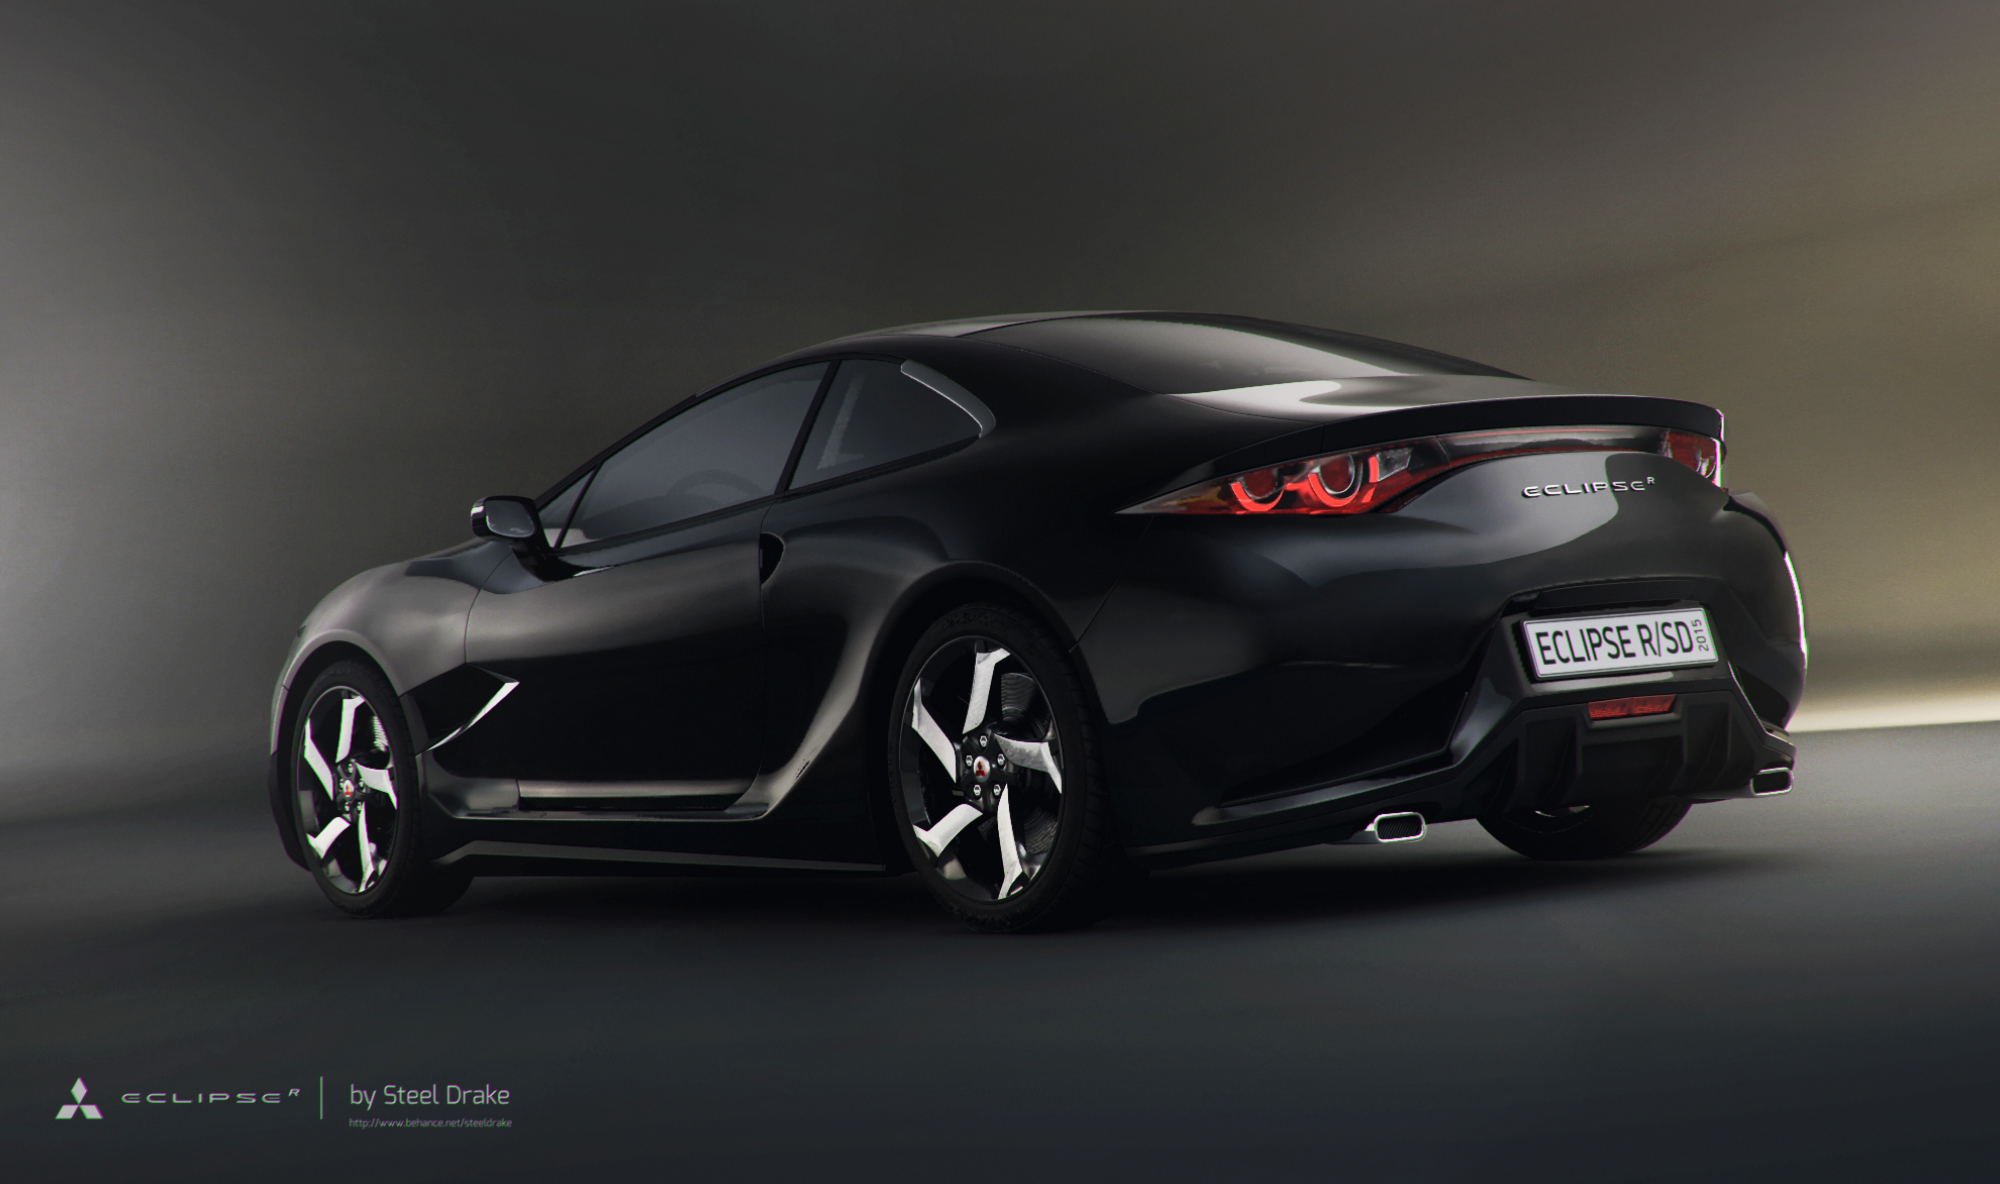 Mitsubishi Eclipse R Concept 2015 On Behance